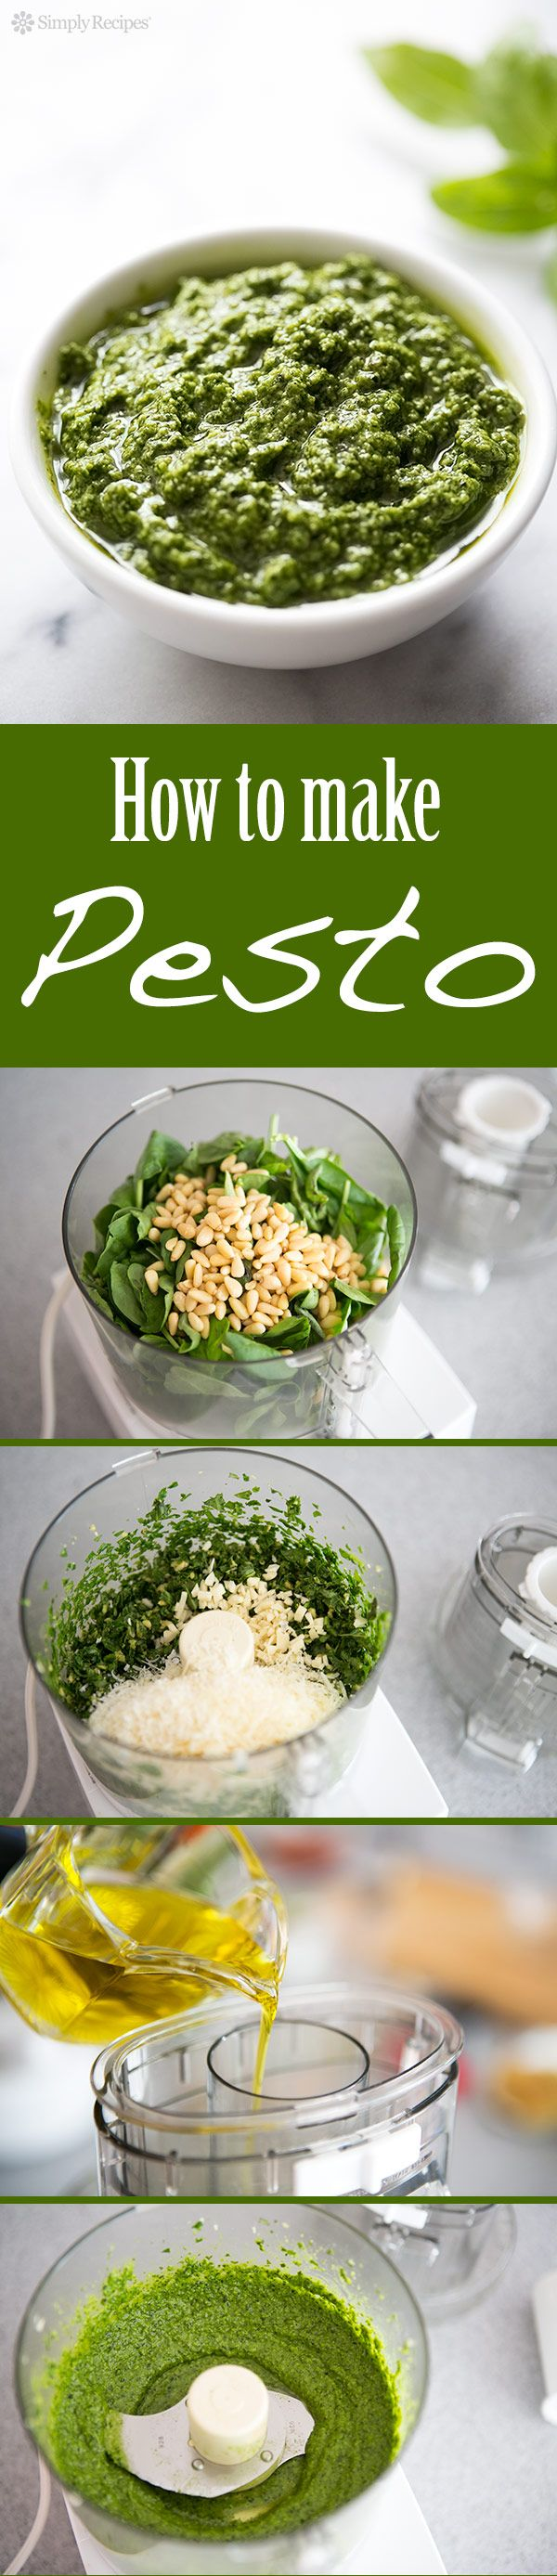 Make your own homemade pesto. It's easy! Great for adding to pasta, chicken…